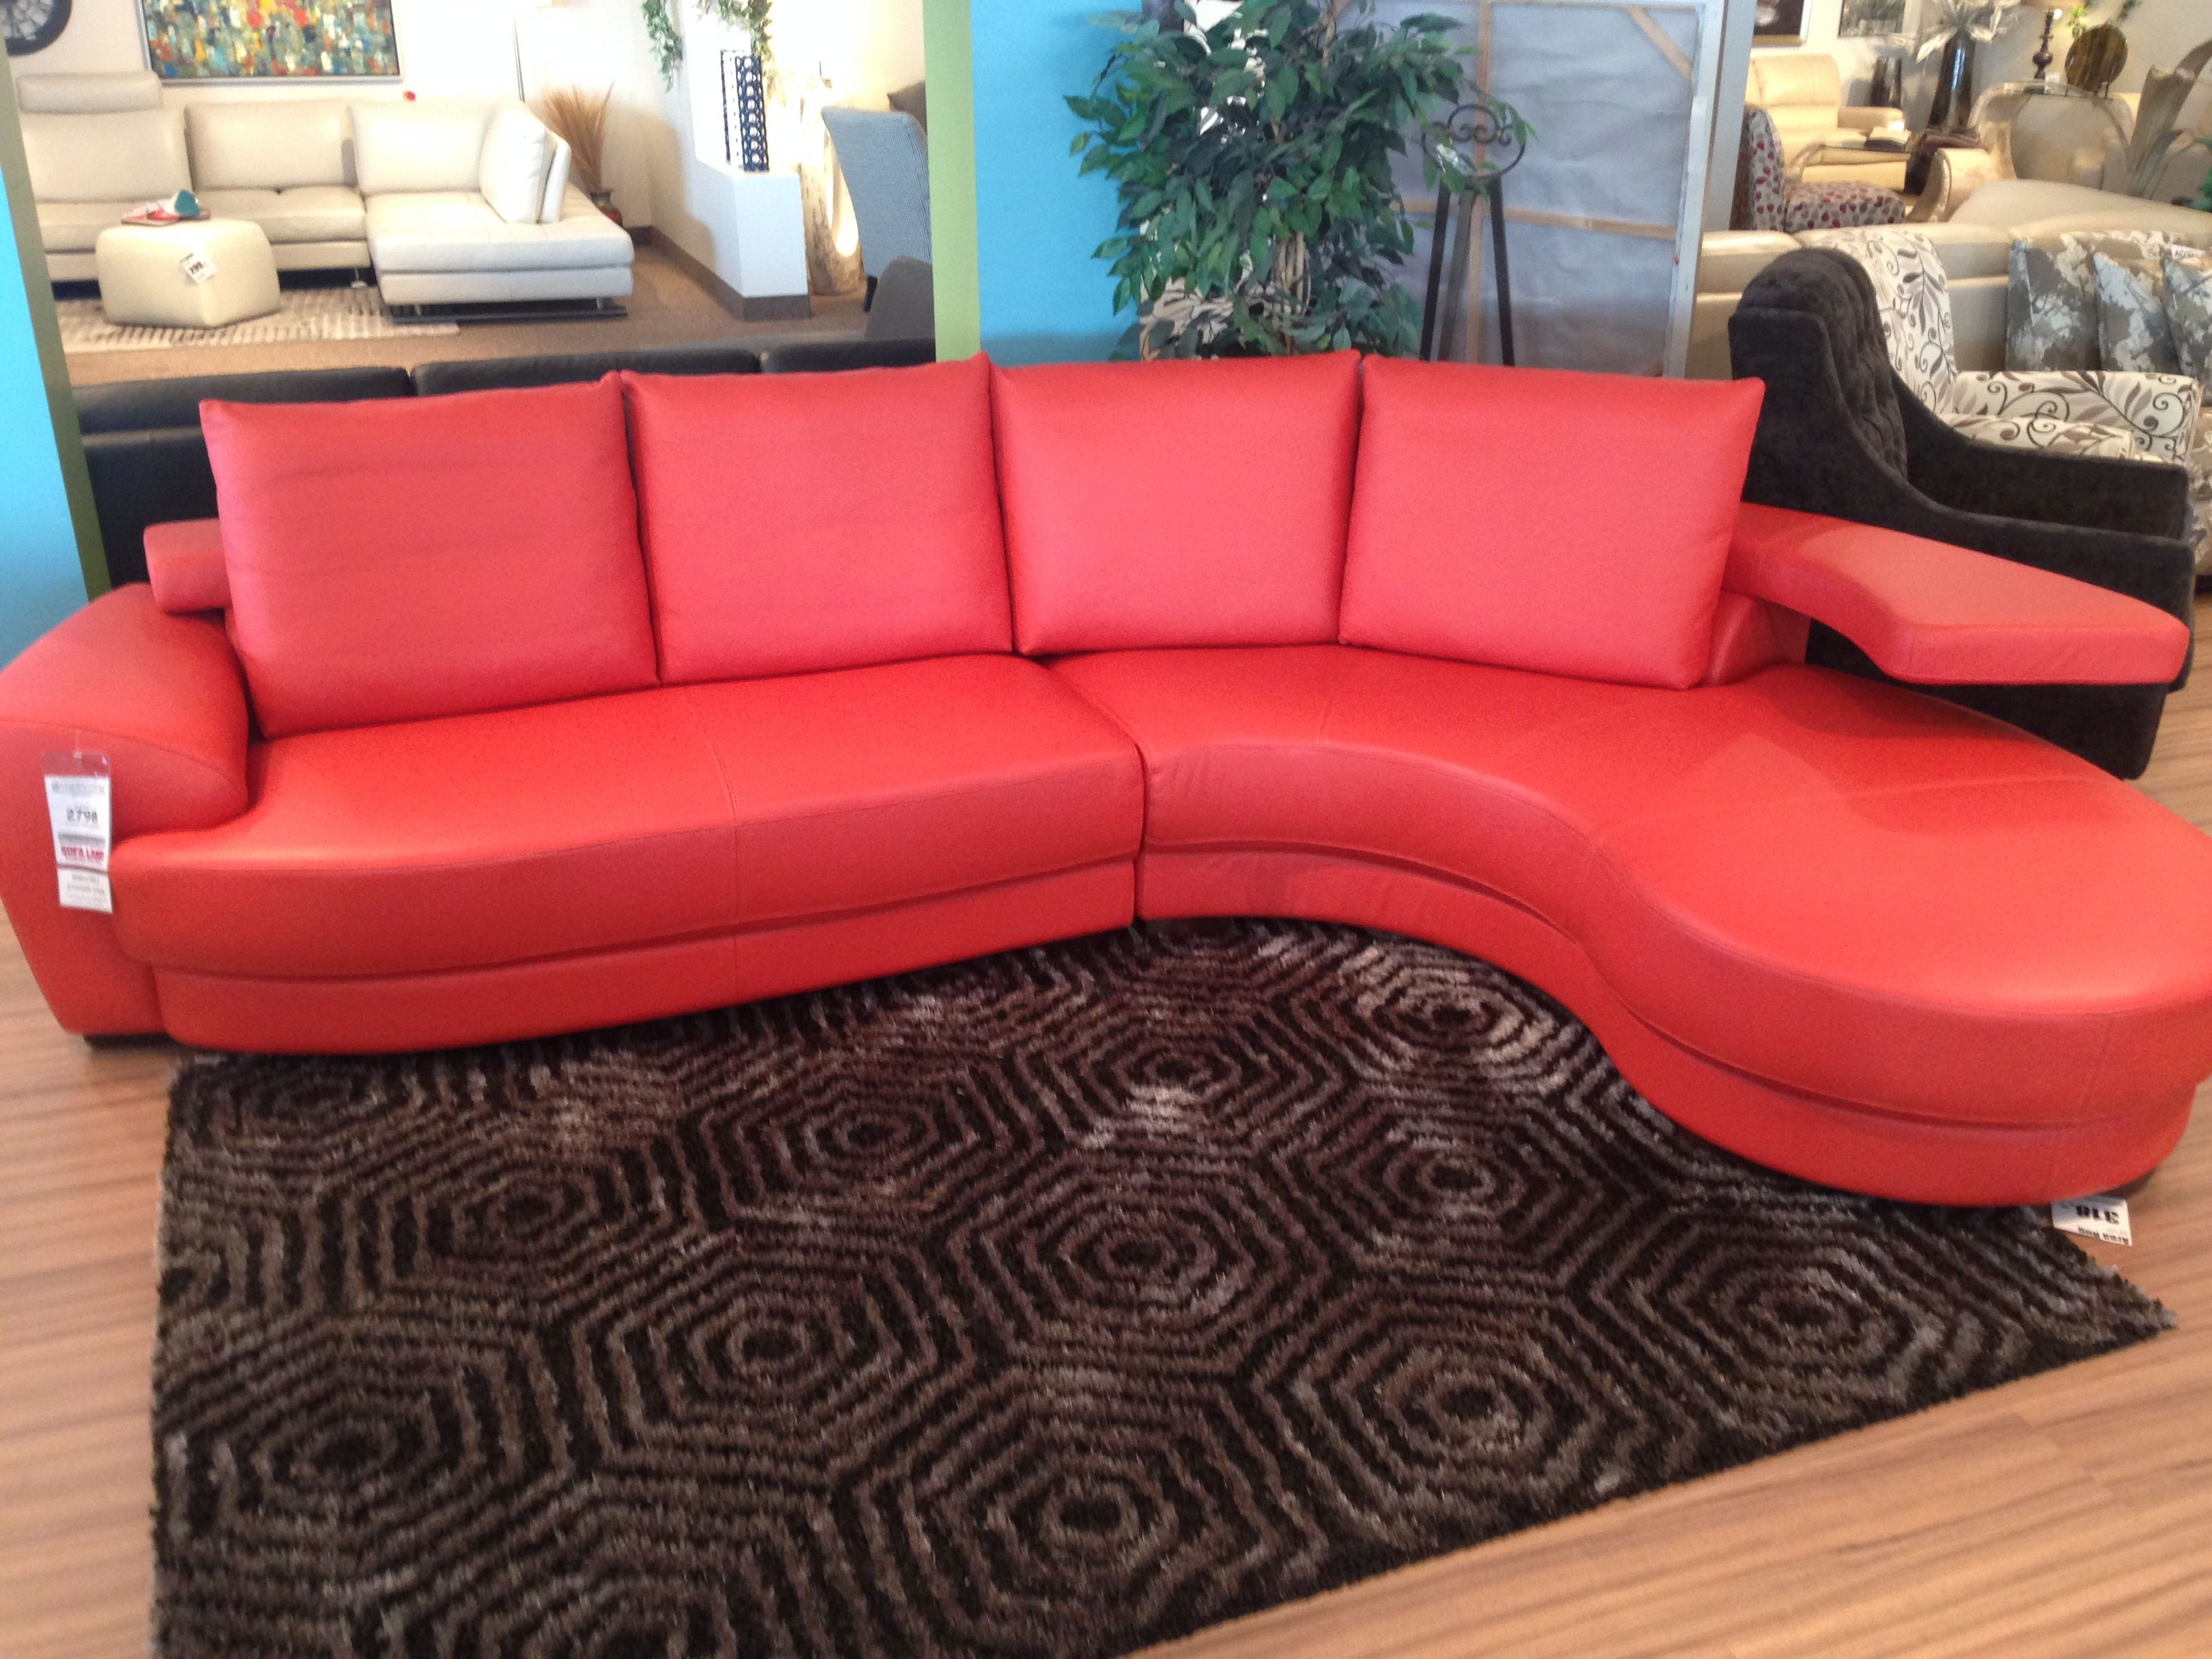 The Ashlynn Sectional just arrived at Sofa Land This leather